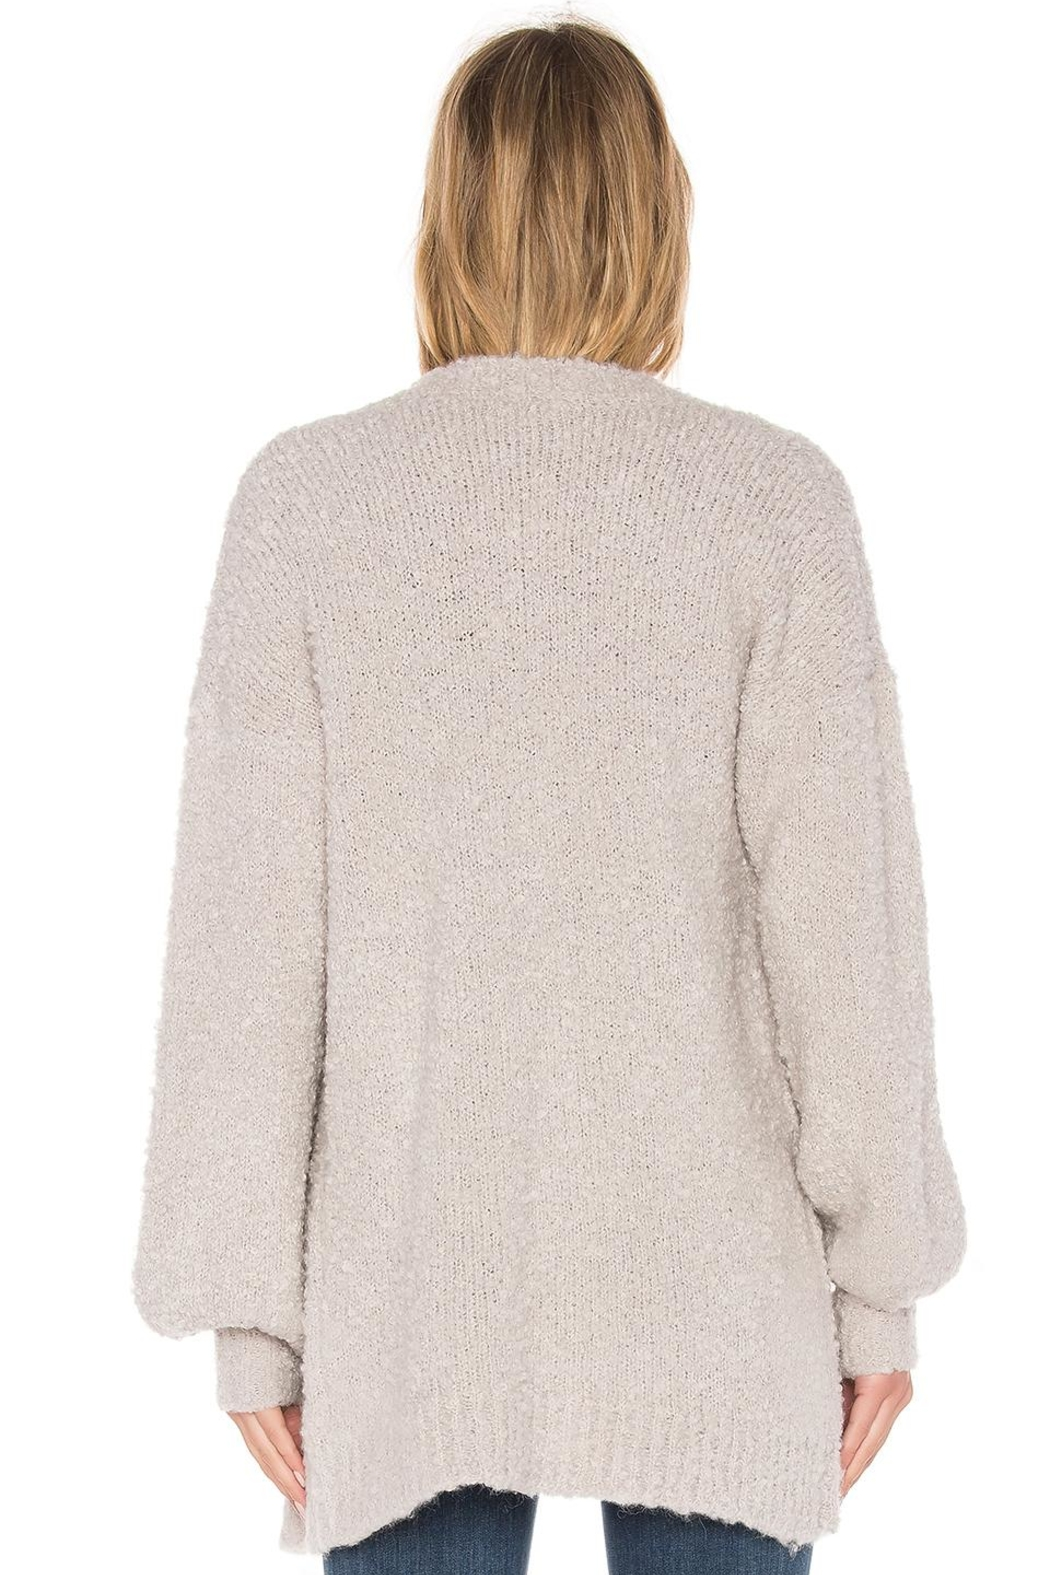 Tularosa  Clementine Sweater - Side Cropped Image